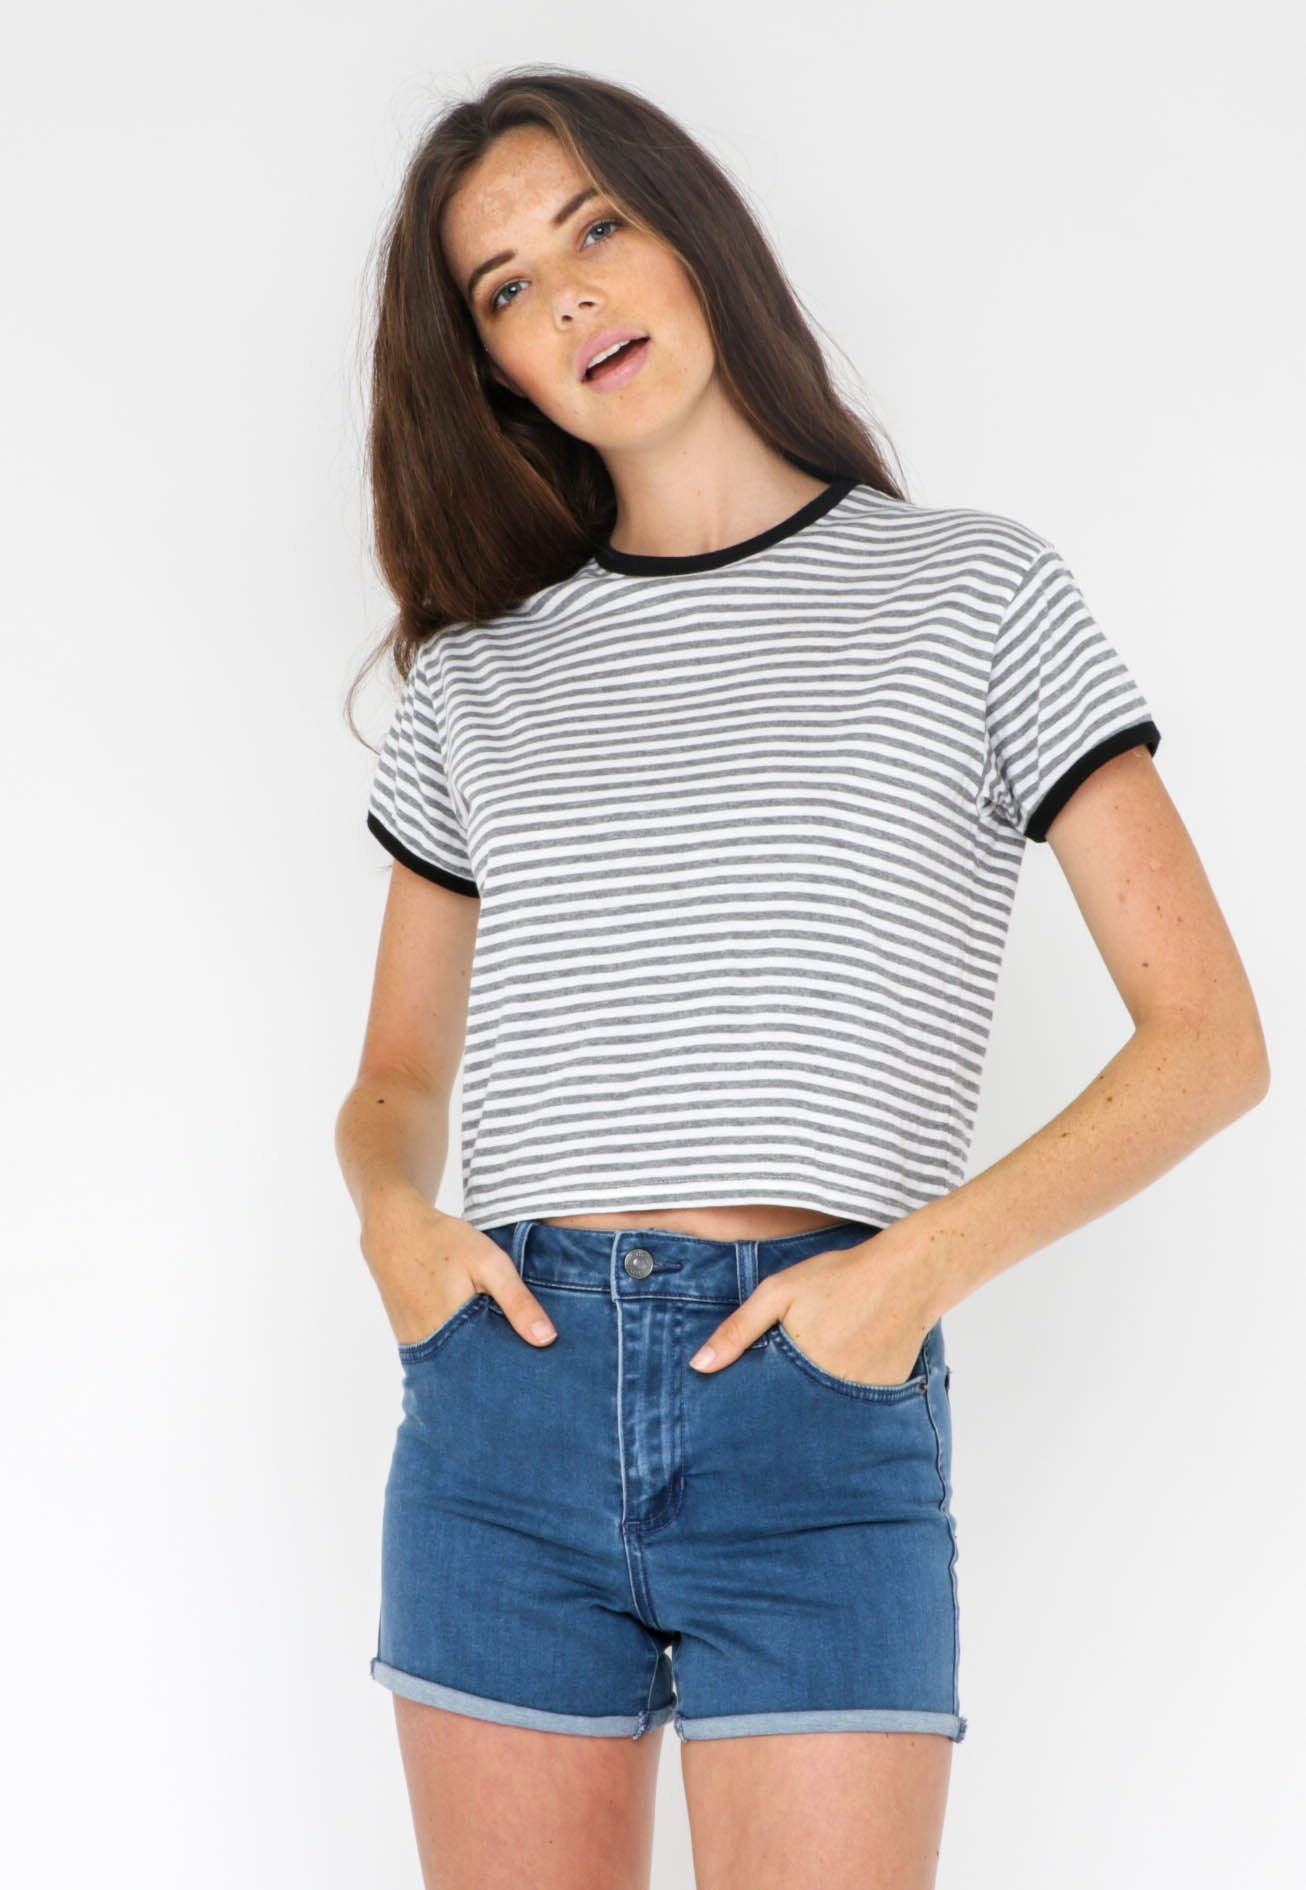 Silent Theory - Dead Ringer Stripe Tee - Grey and white stripe